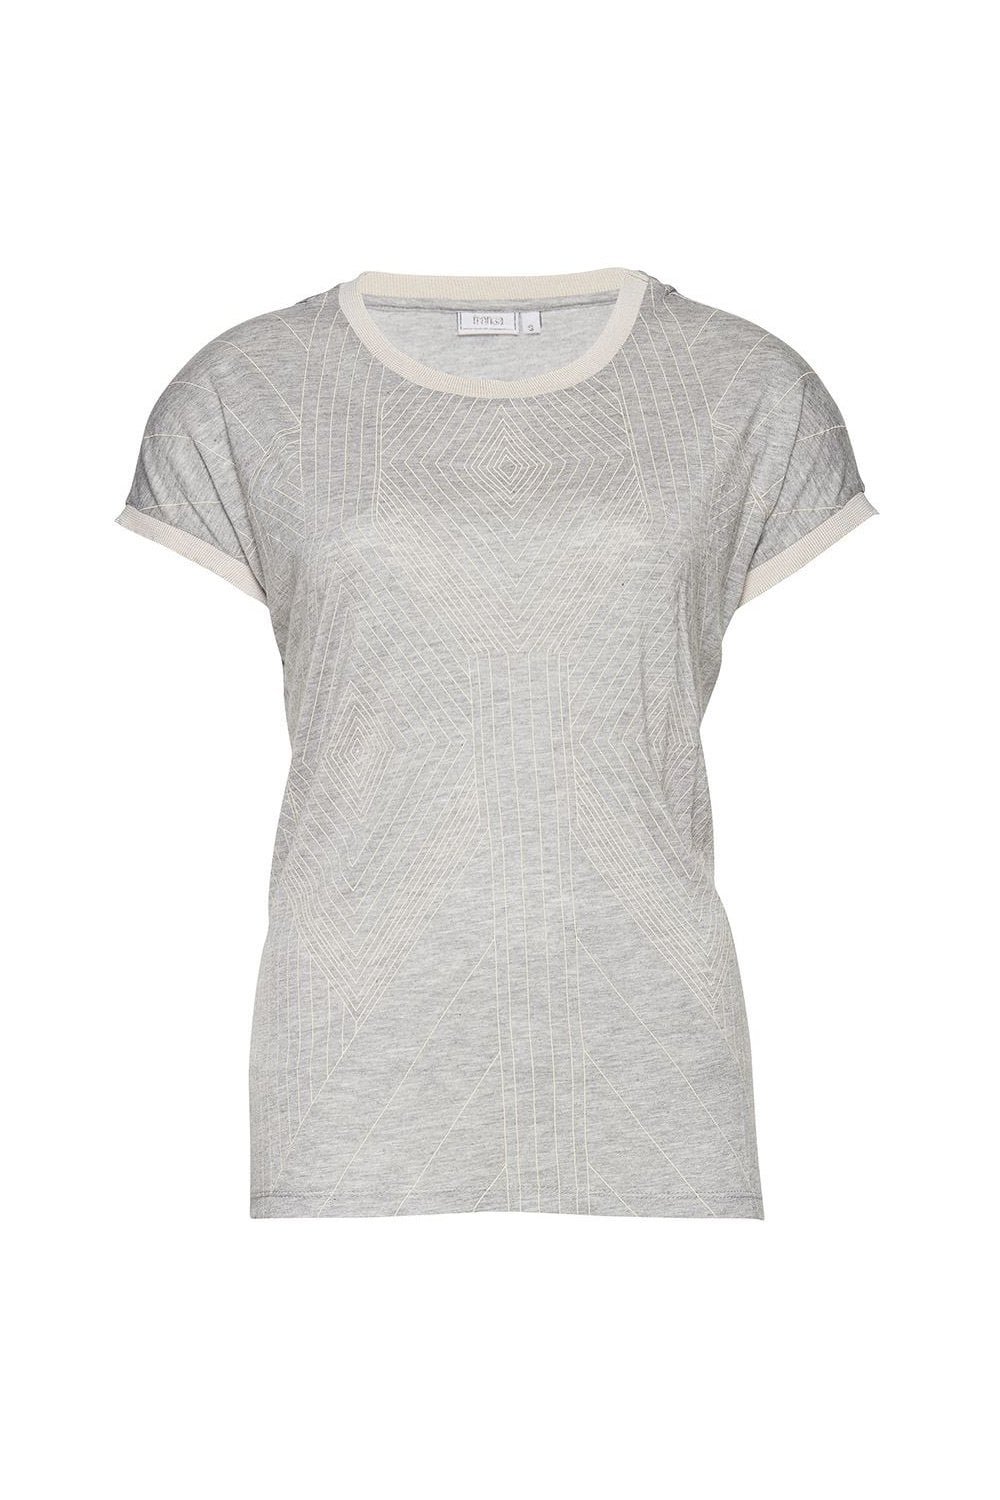 Fransa Gifro 1 Printed T Shirt Womenswear From Potters Of Buxton Uk